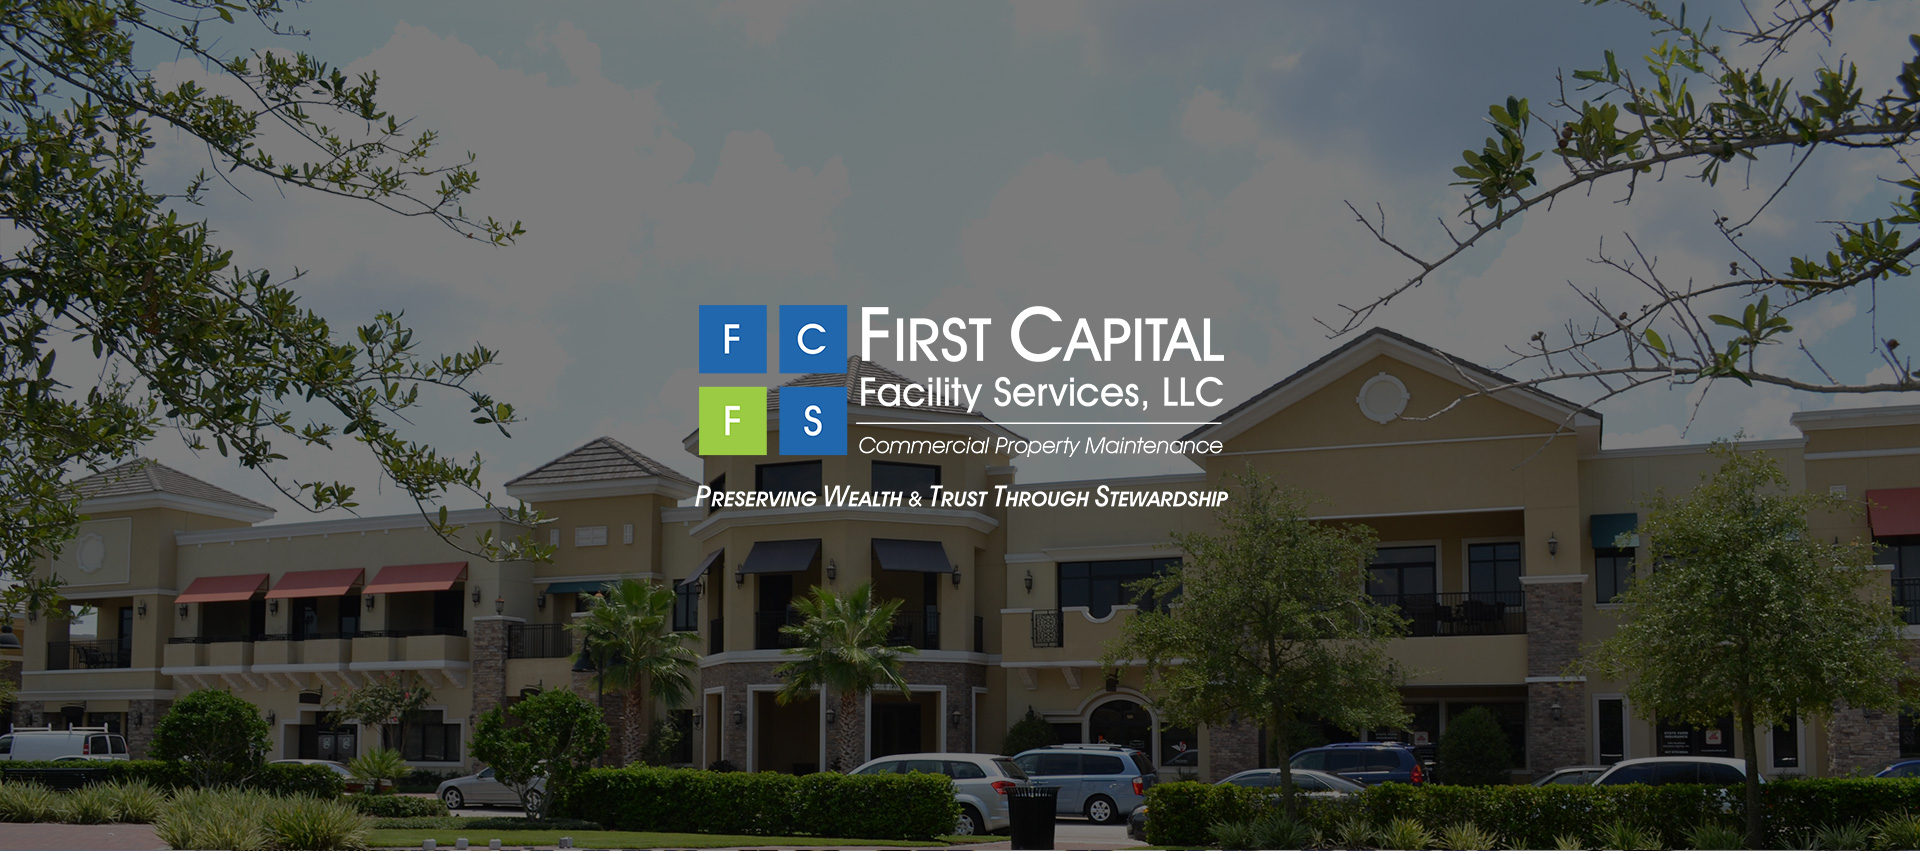 FCFS - Preserving Wealth & Trust Through Stewardship